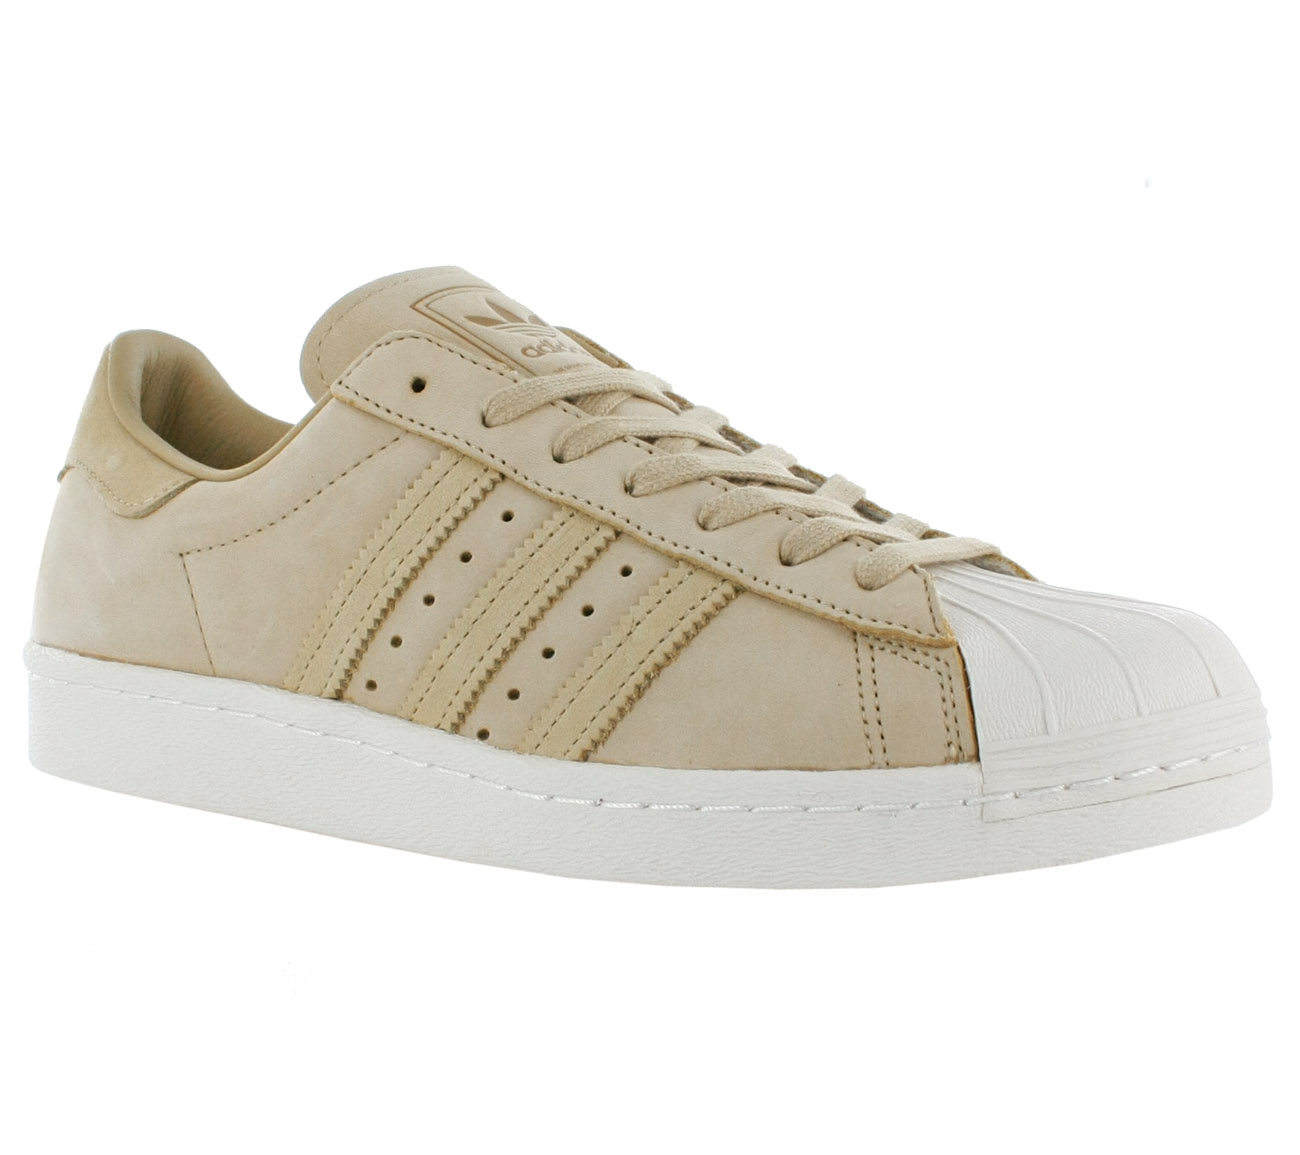 hot sale online e06dd dd5e7 NEUF adidas Superstar 80s BY2507 Hommes Baskets Chaussures Sneaker SALE